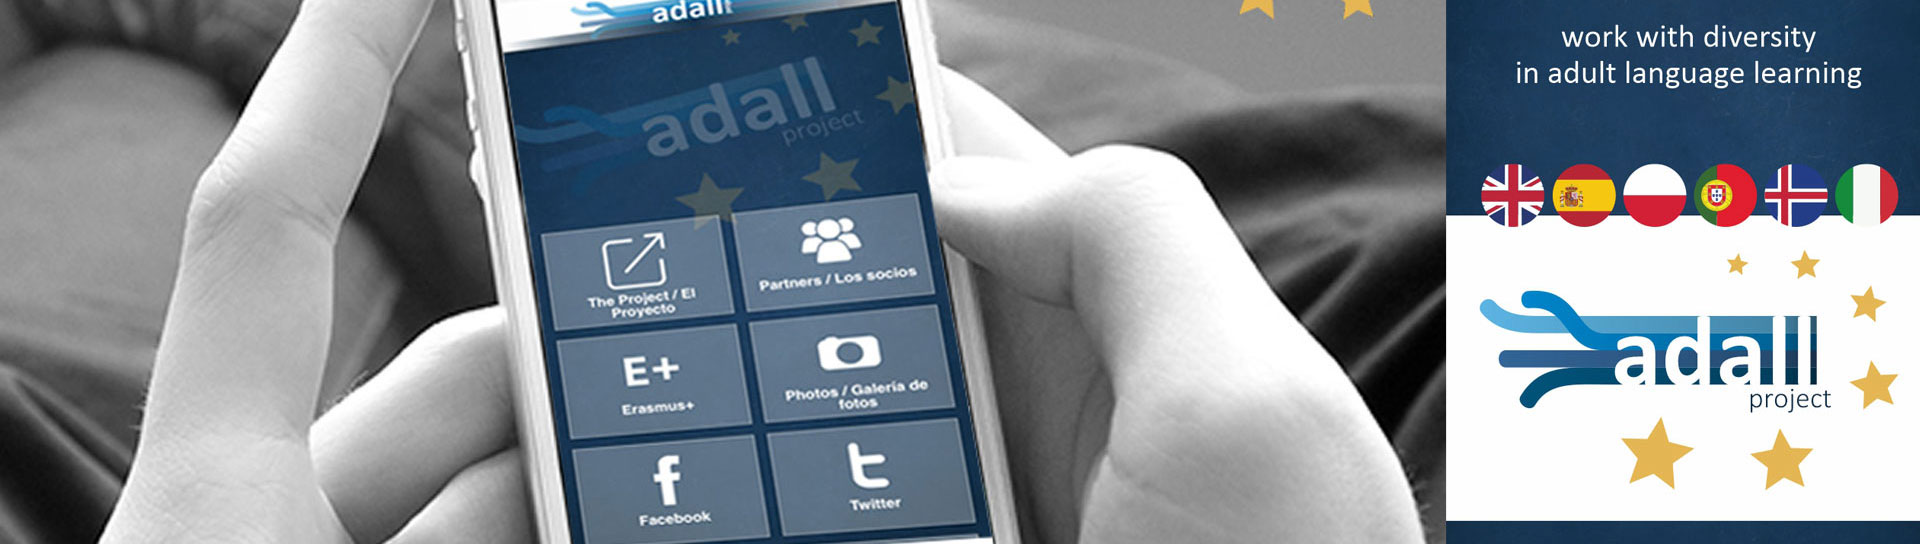 Download Mobile APP ADALL